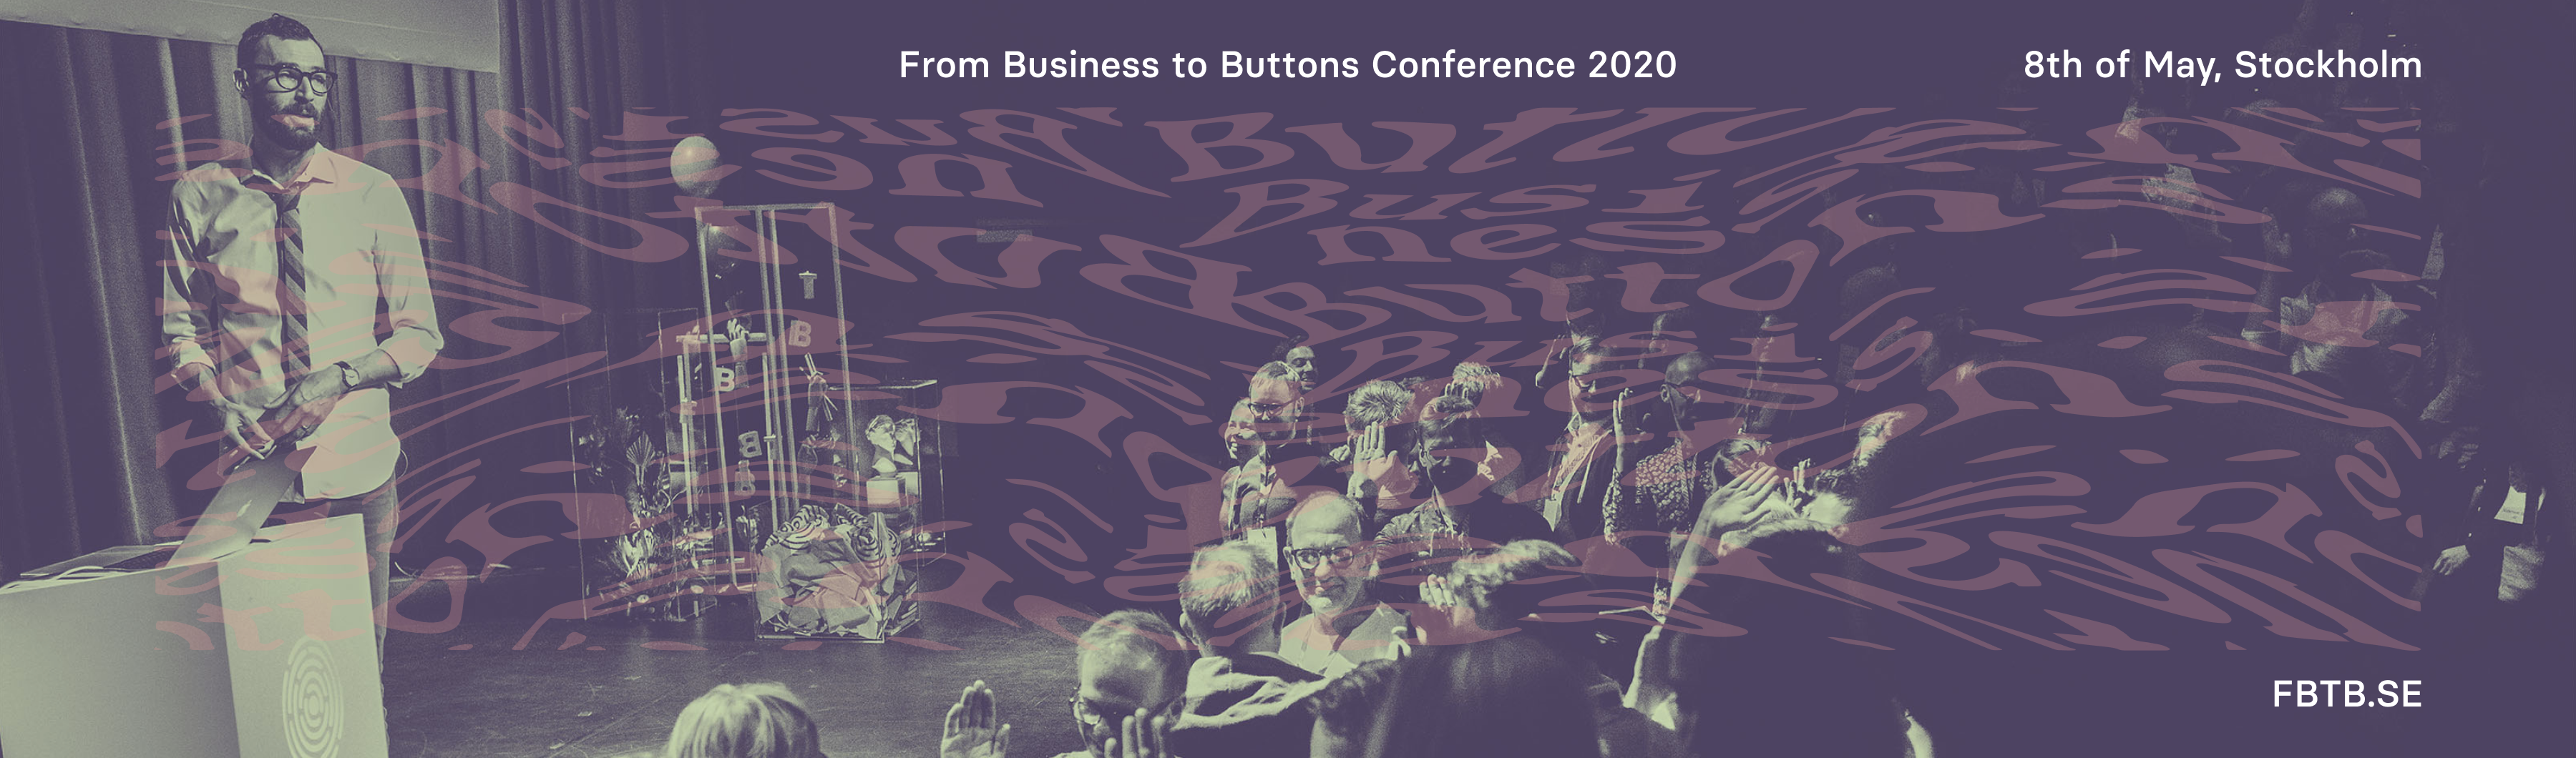 From Business to Buttons 2021